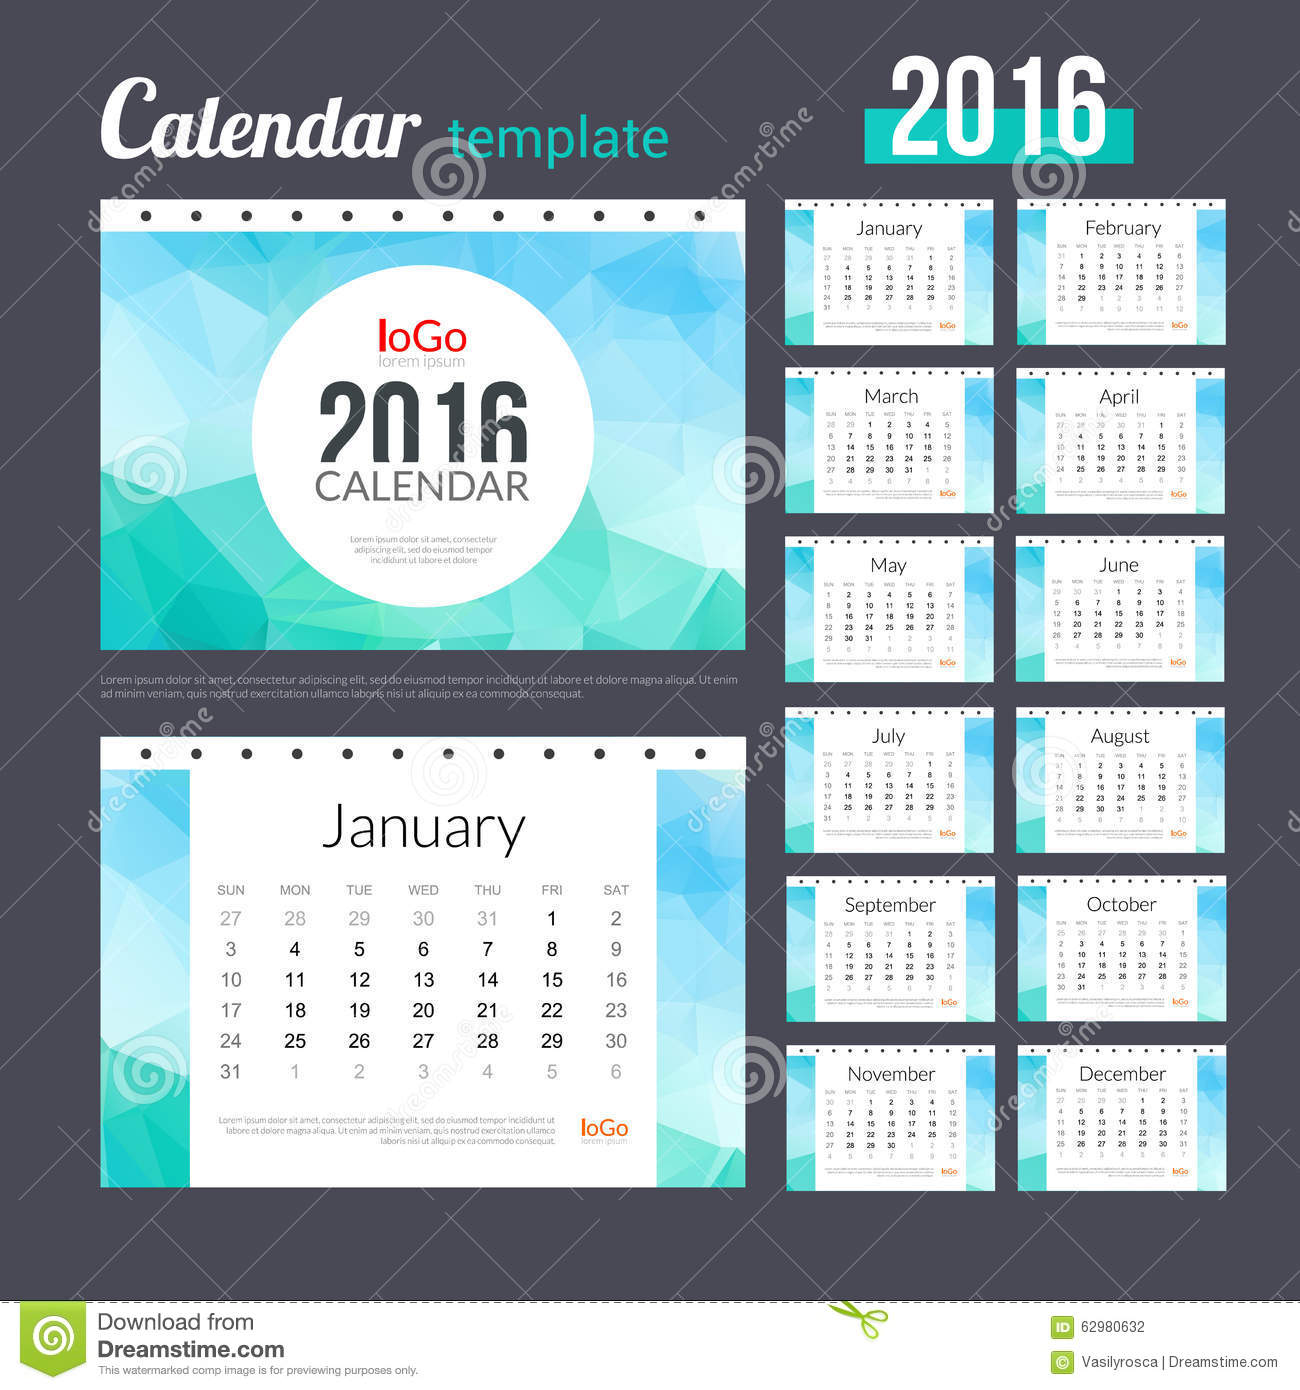 Calendar Design Free Vector : Desk calendar design template with triangular stock